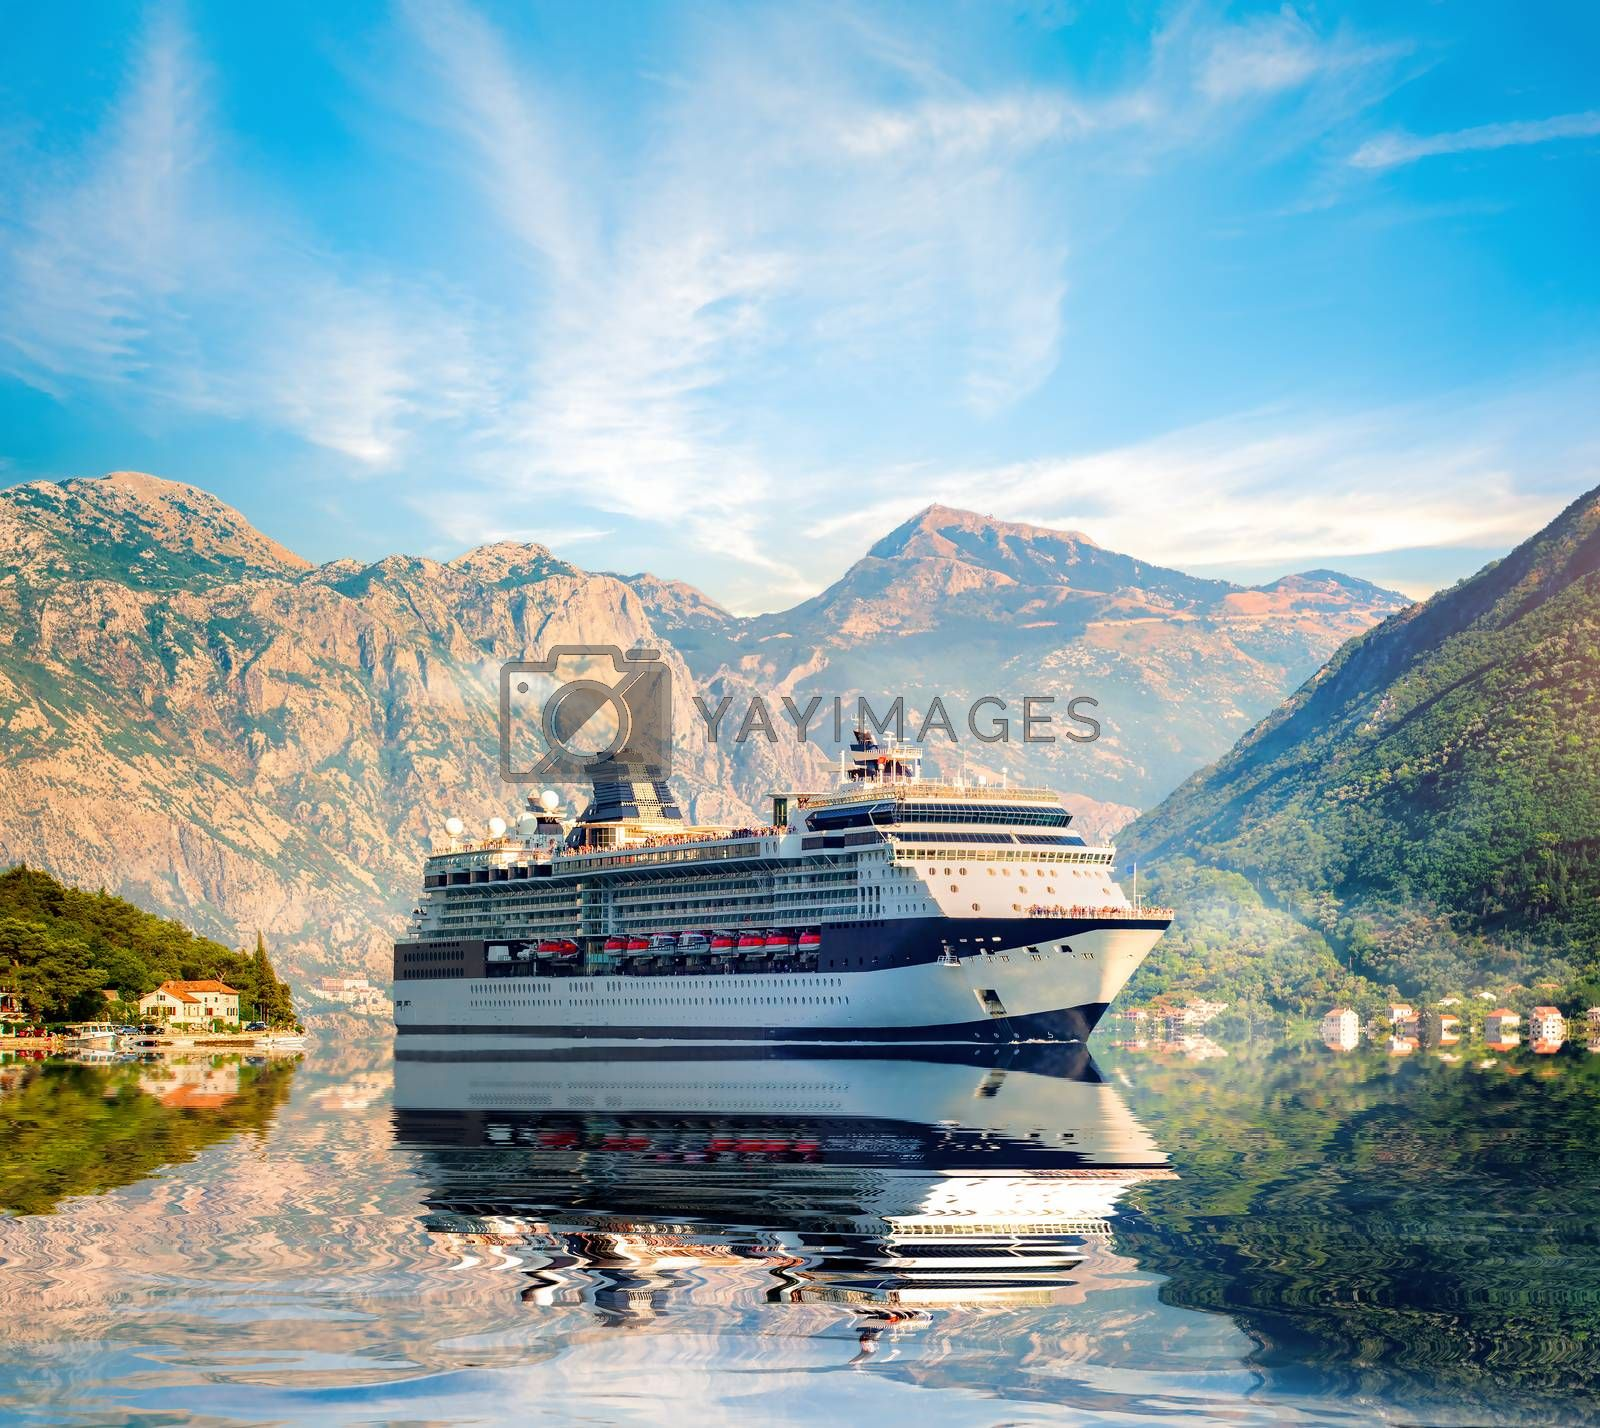 Cruise liner ship by Givaga